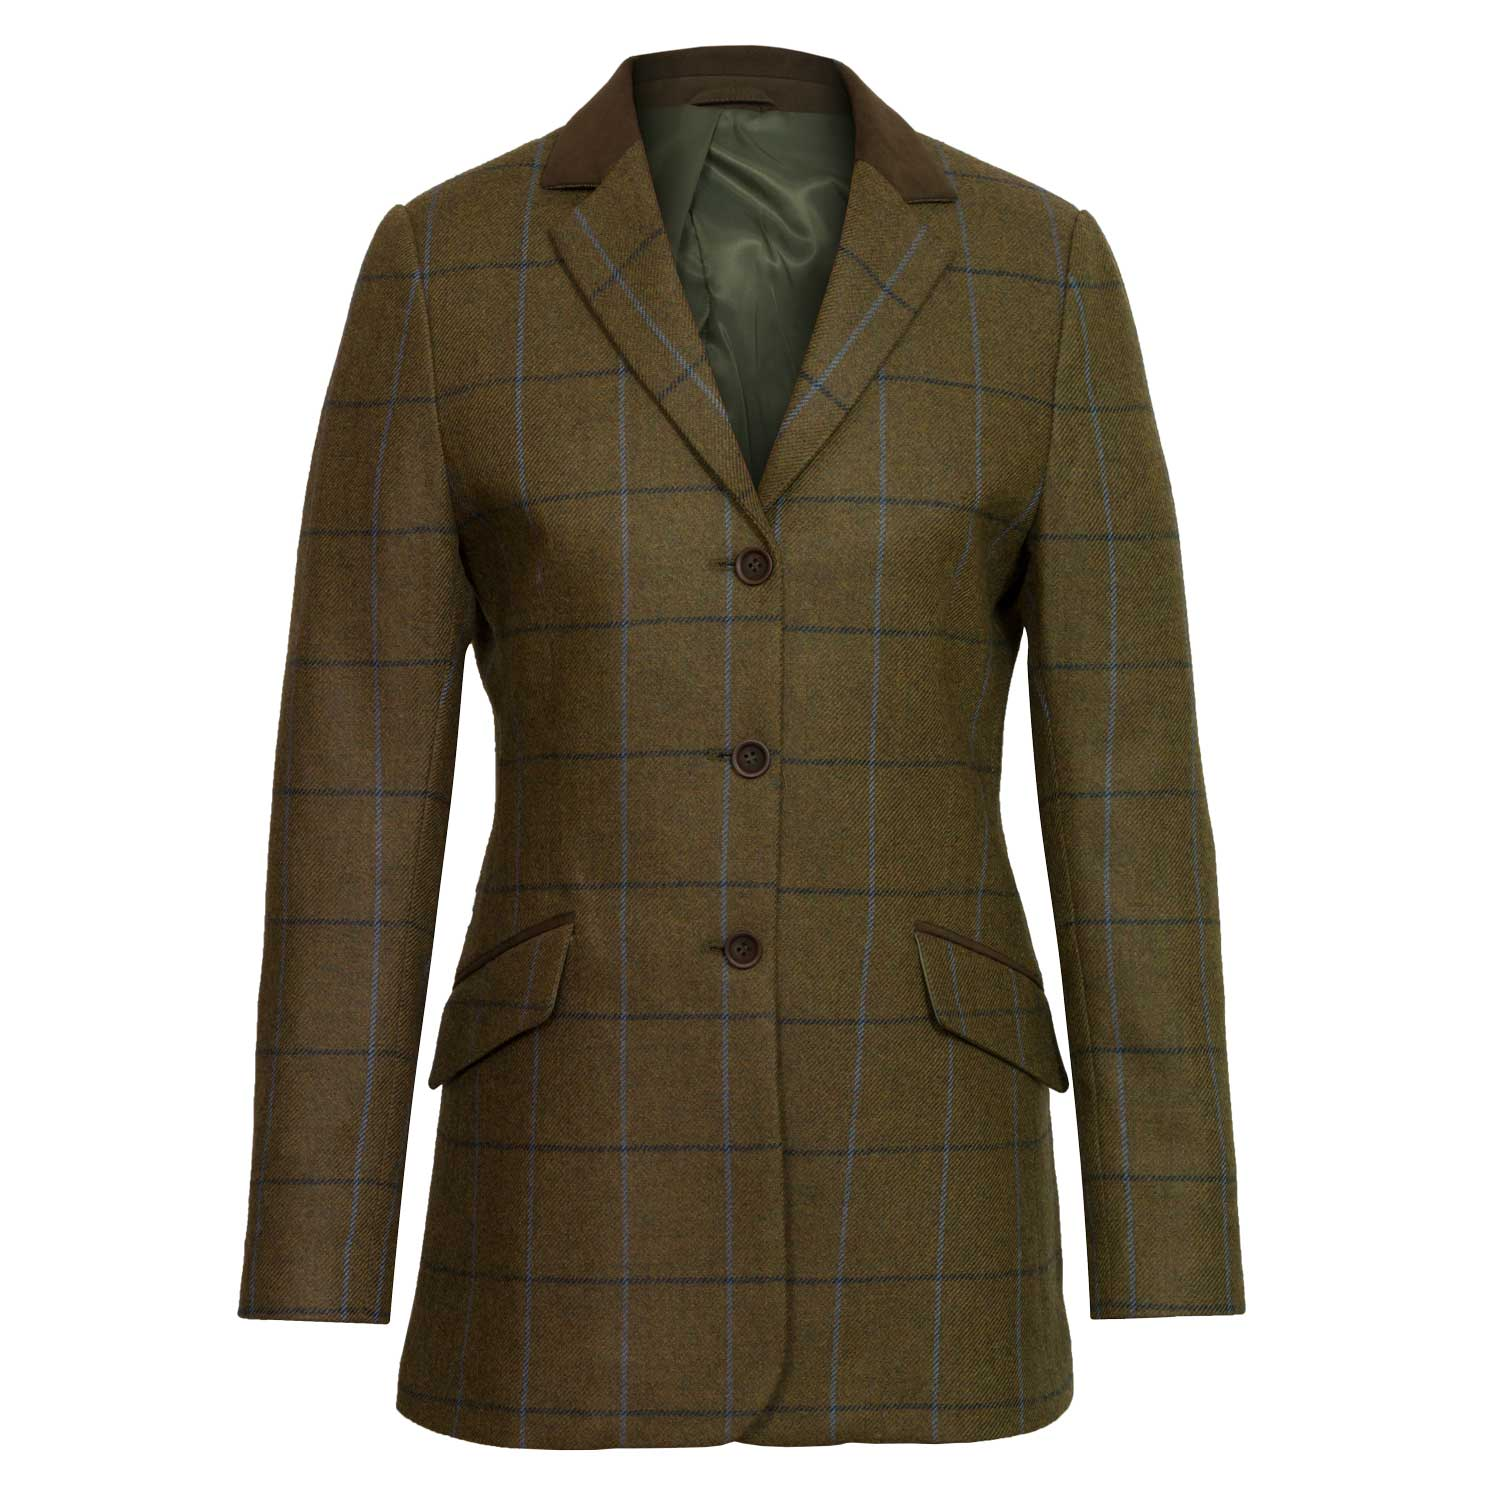 Women's Brown Tweed Jacket: Lomond